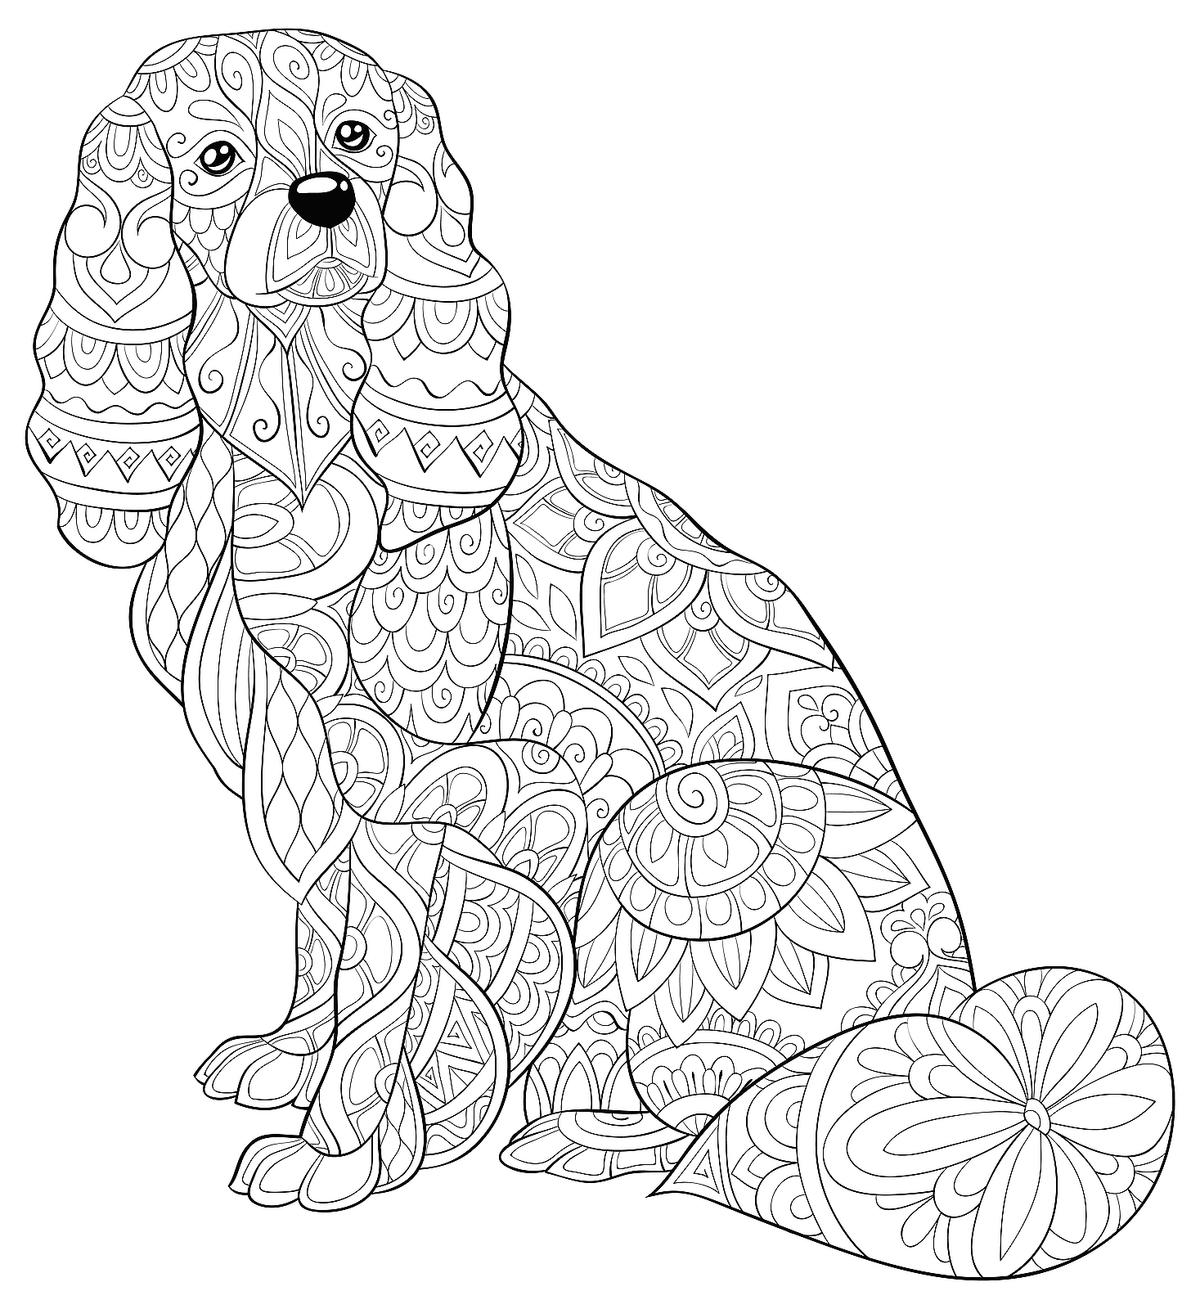 dog color pages dog to download for free dogs kids coloring pages dog color pages